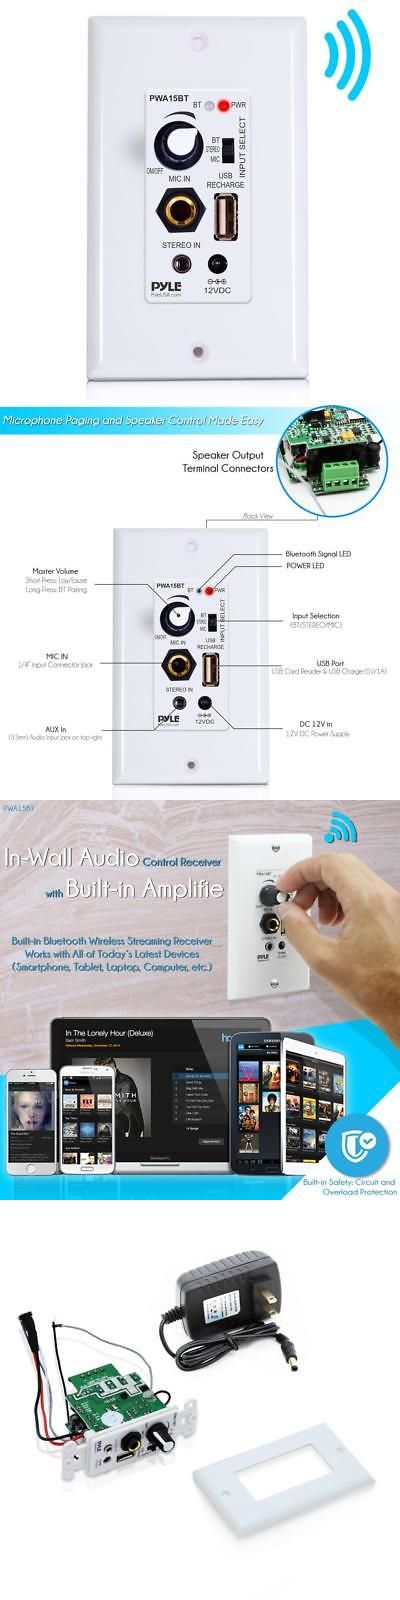 Home Theater Systems: New Pyle Bluetooth In-Wall Receiver, Wall Plate Audio Control Amplifier Usb Port -> BUY IT NOW ONLY: $49.69 on eBay!